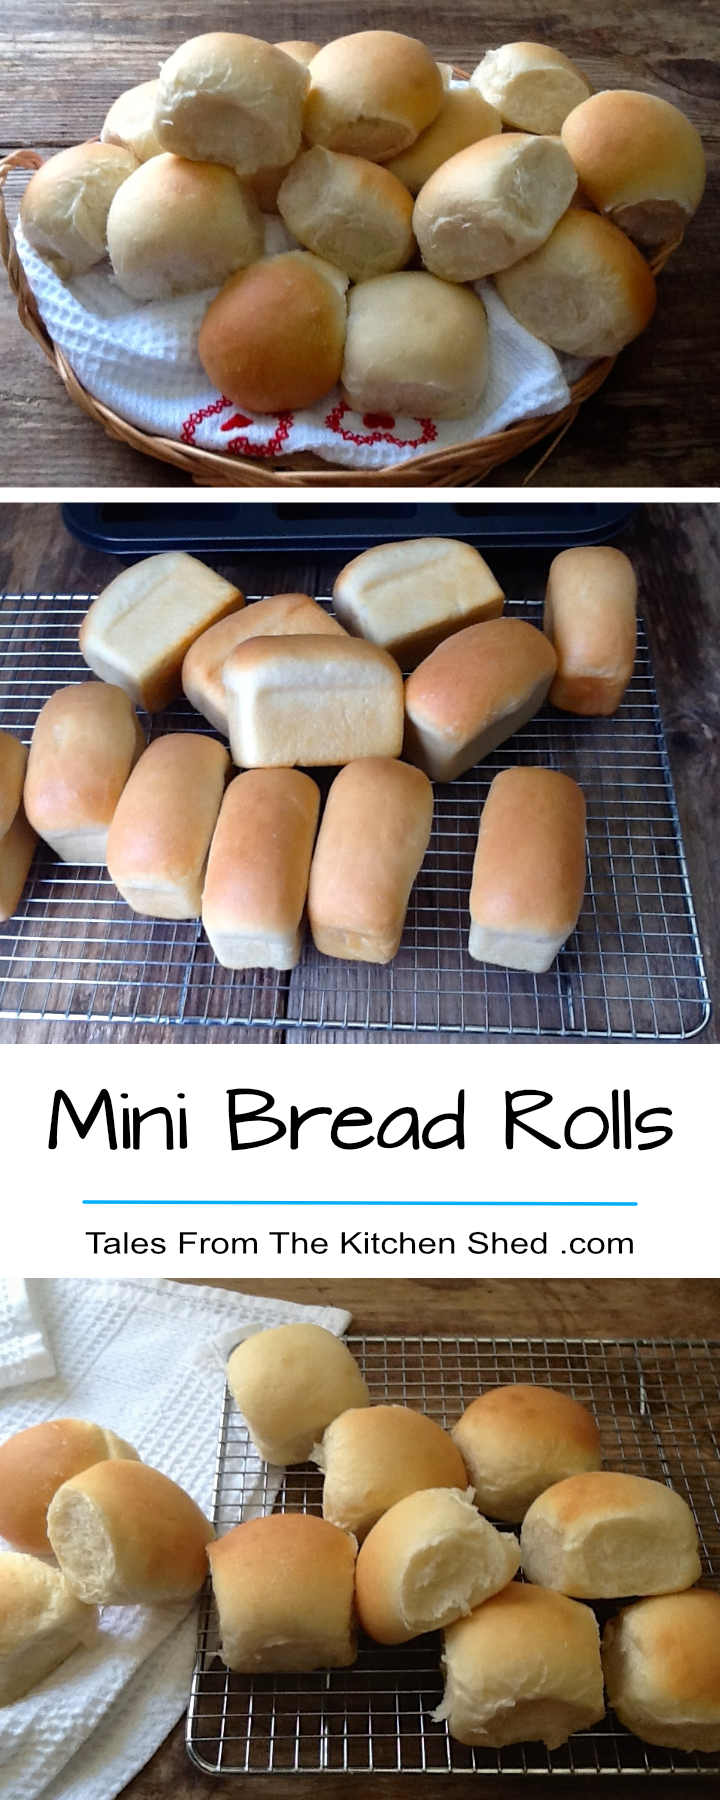 Mini Bread Rolls – you can't beat a basket of homemade rolls! Easy to make with step by step instructions for soft & fluffy rolls every time.